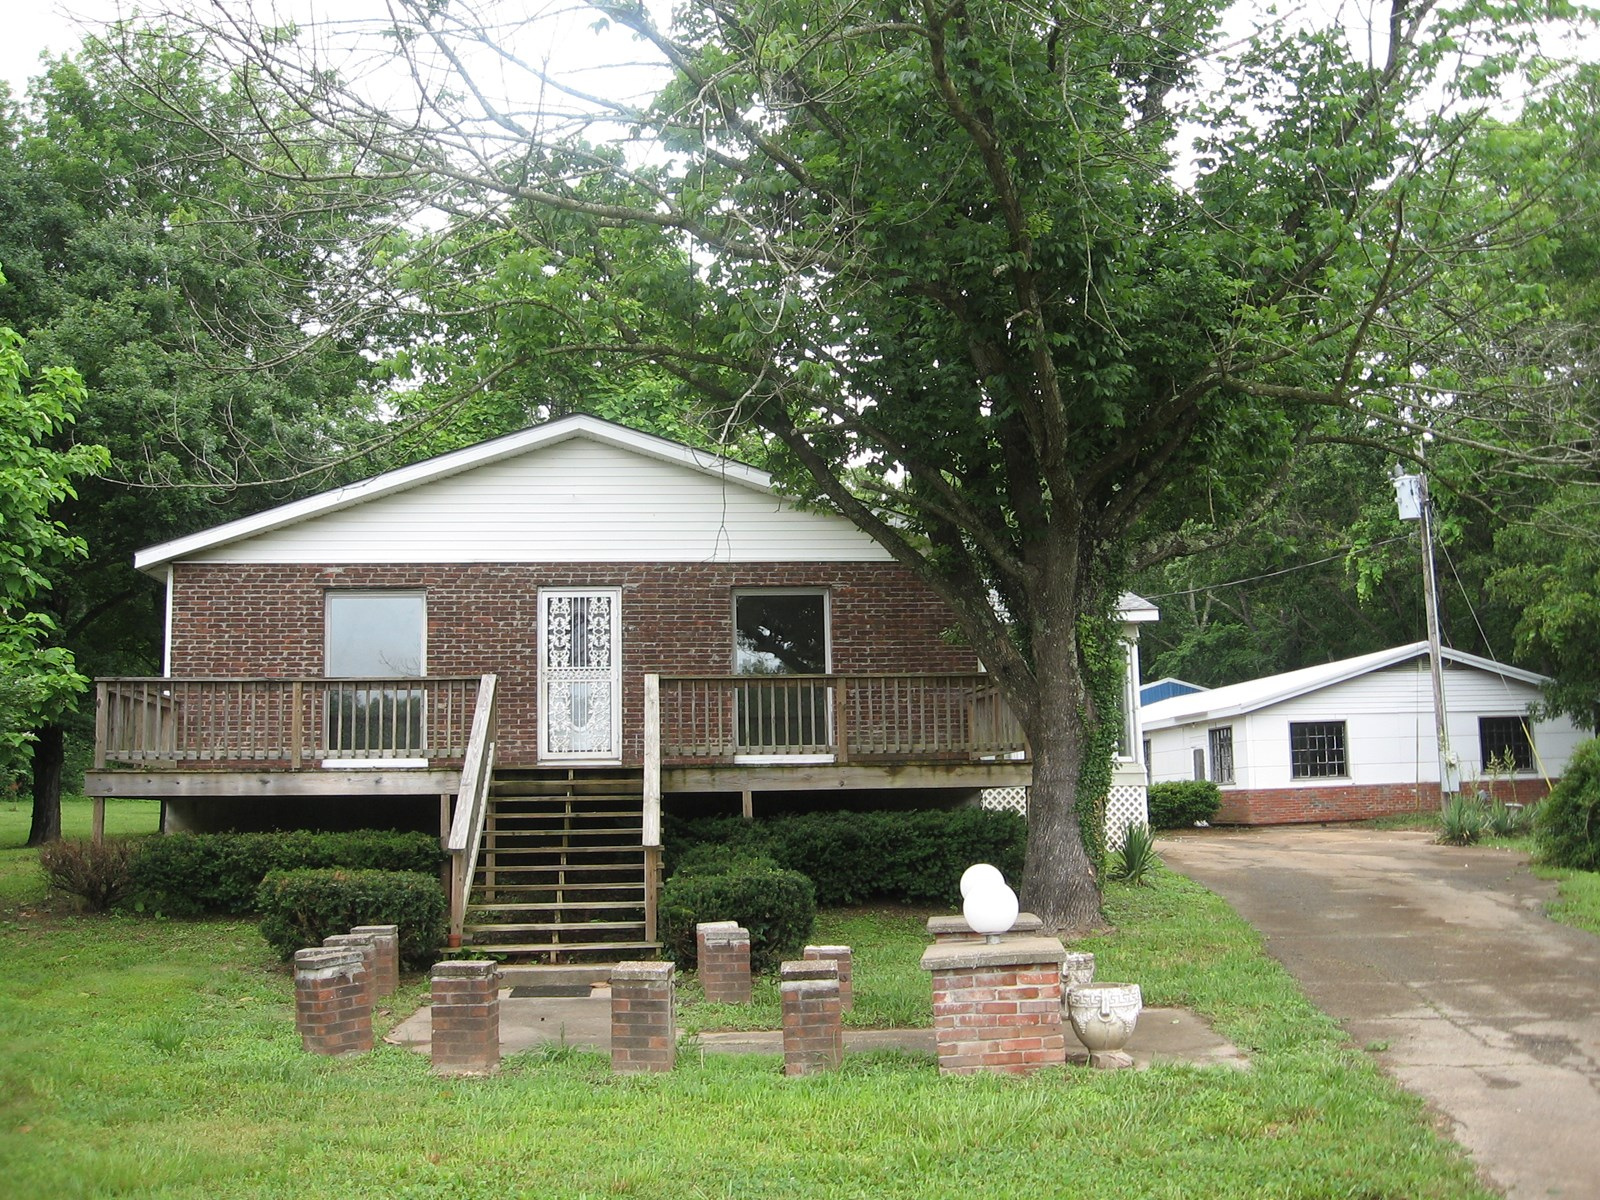 2-BR, 1-BA ON 9 ACRES W/CREEK